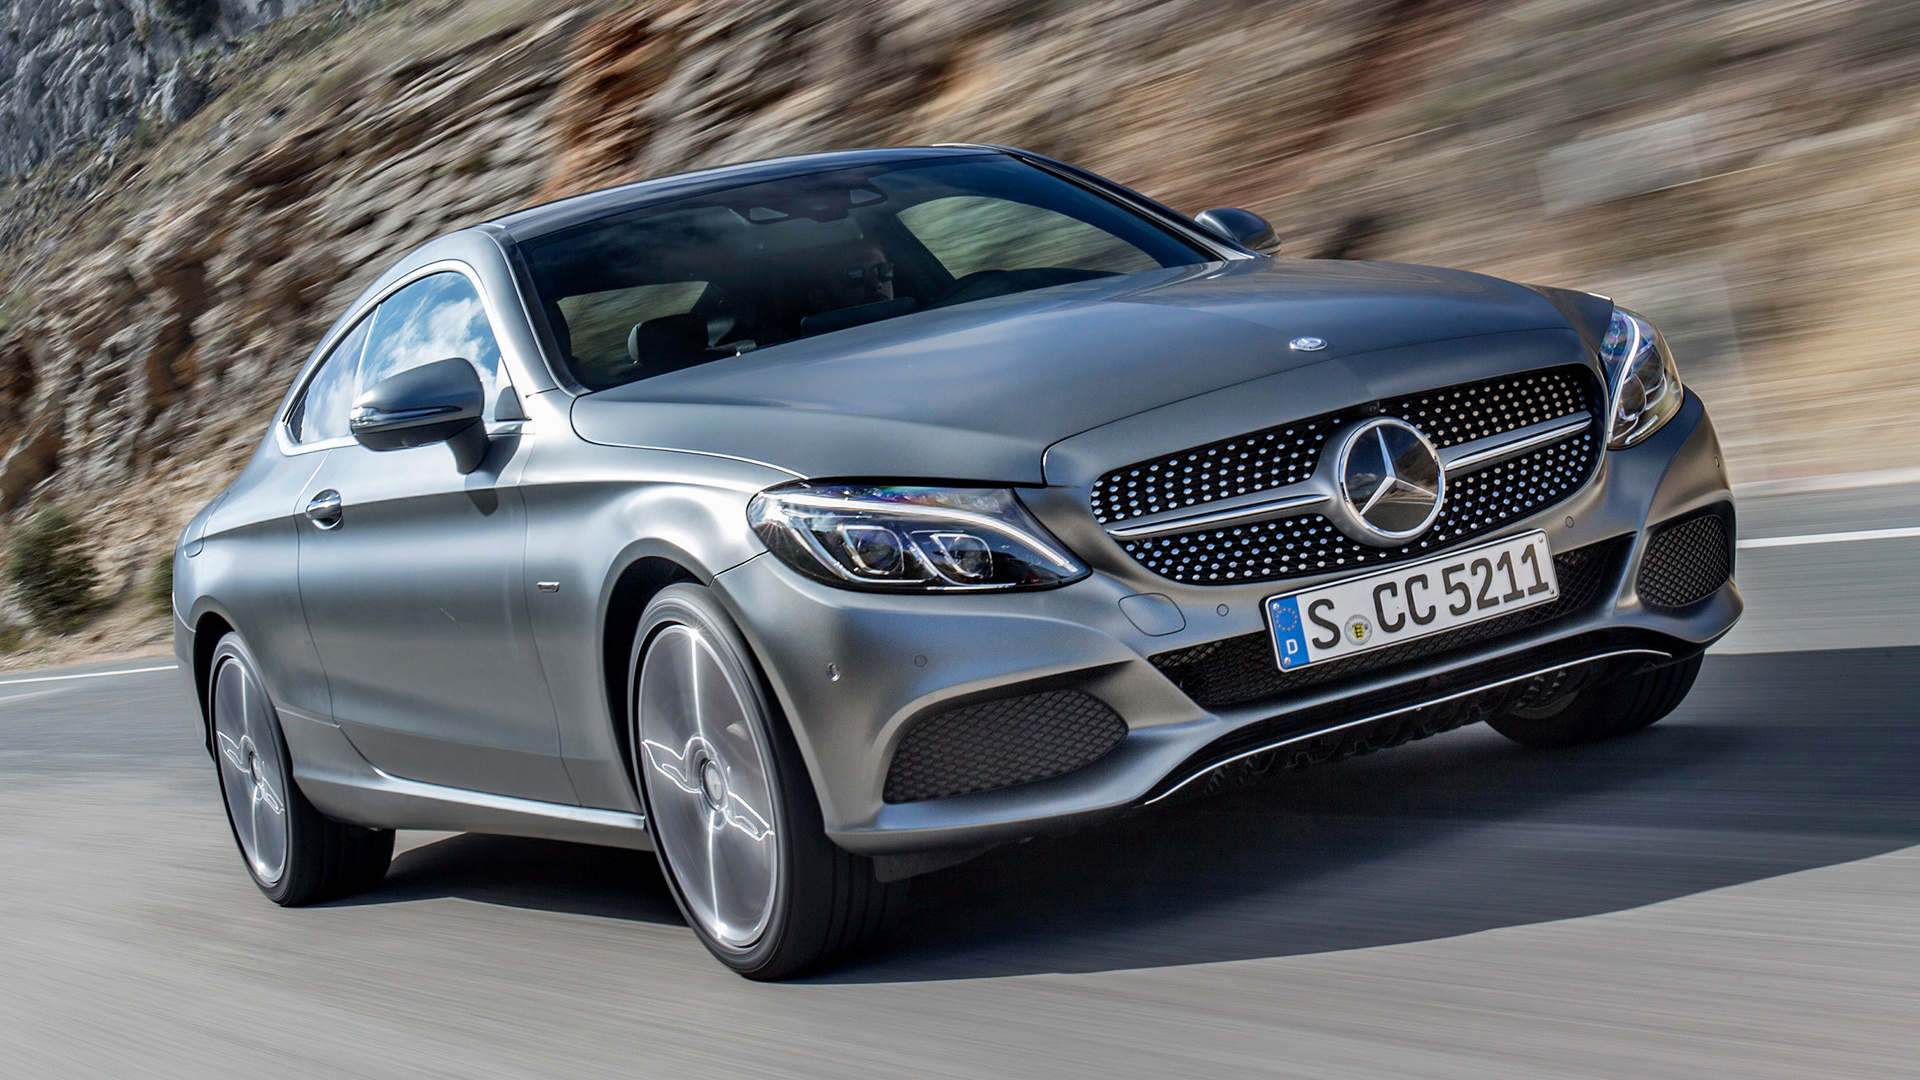 Mercedes benz c class coupe 2015 wallpapers and hd for 2015 mercedes benz c class coupe